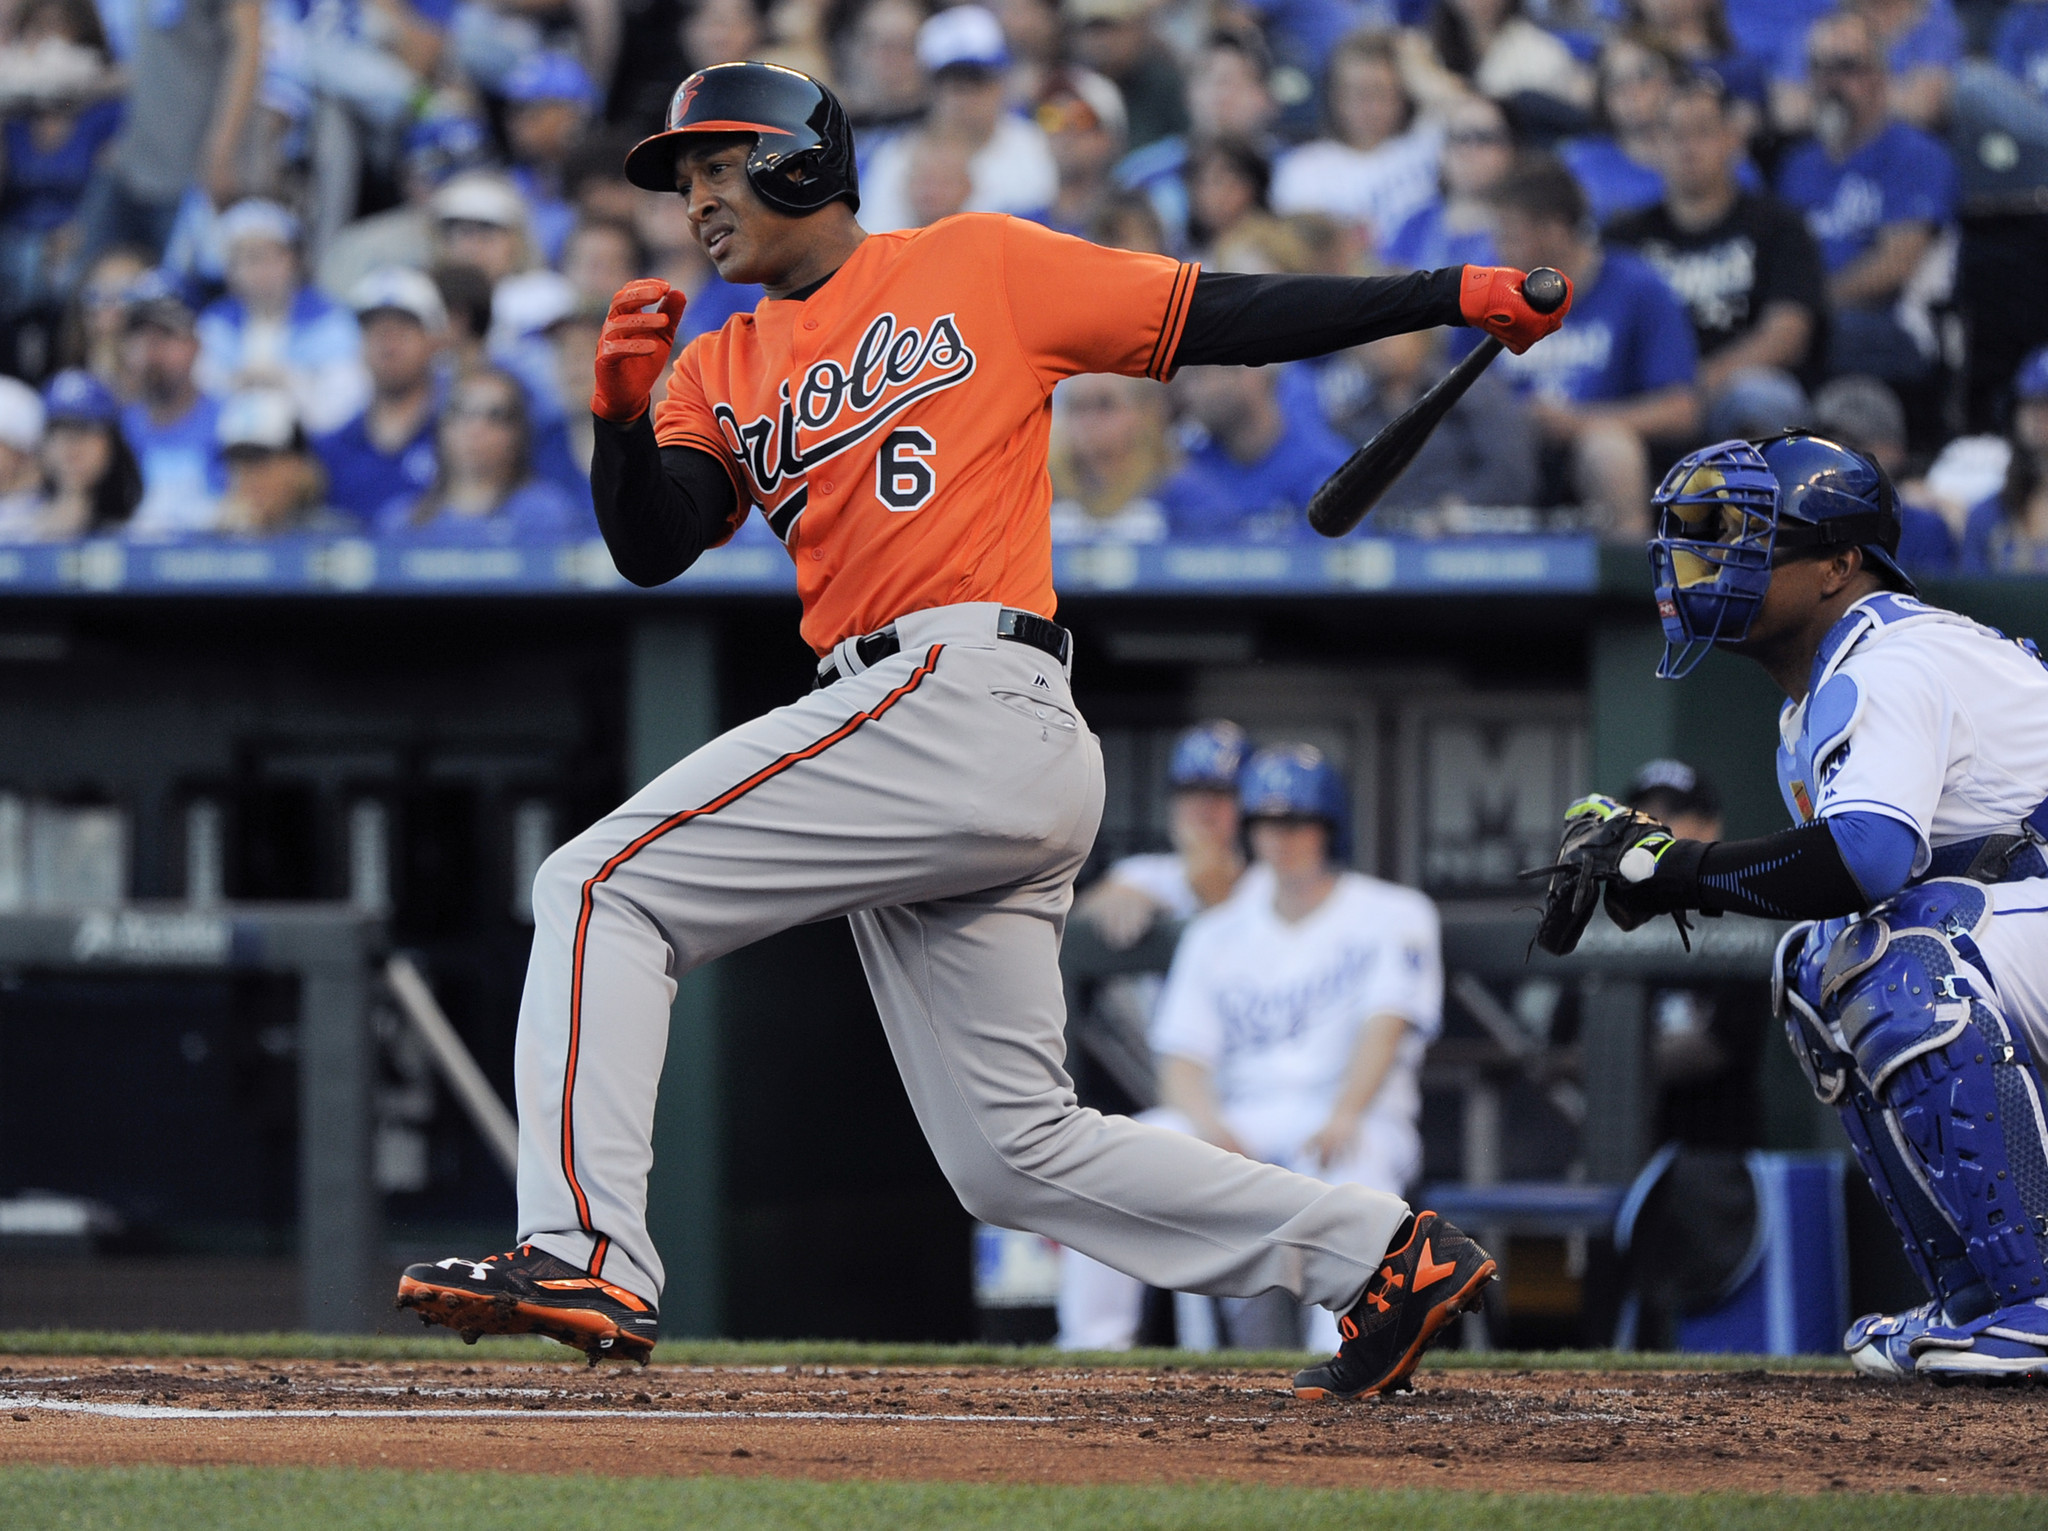 Bal-slumping-jonathan-schoop-taking-struggles-in-stride-sees-end-in-sight-20160428